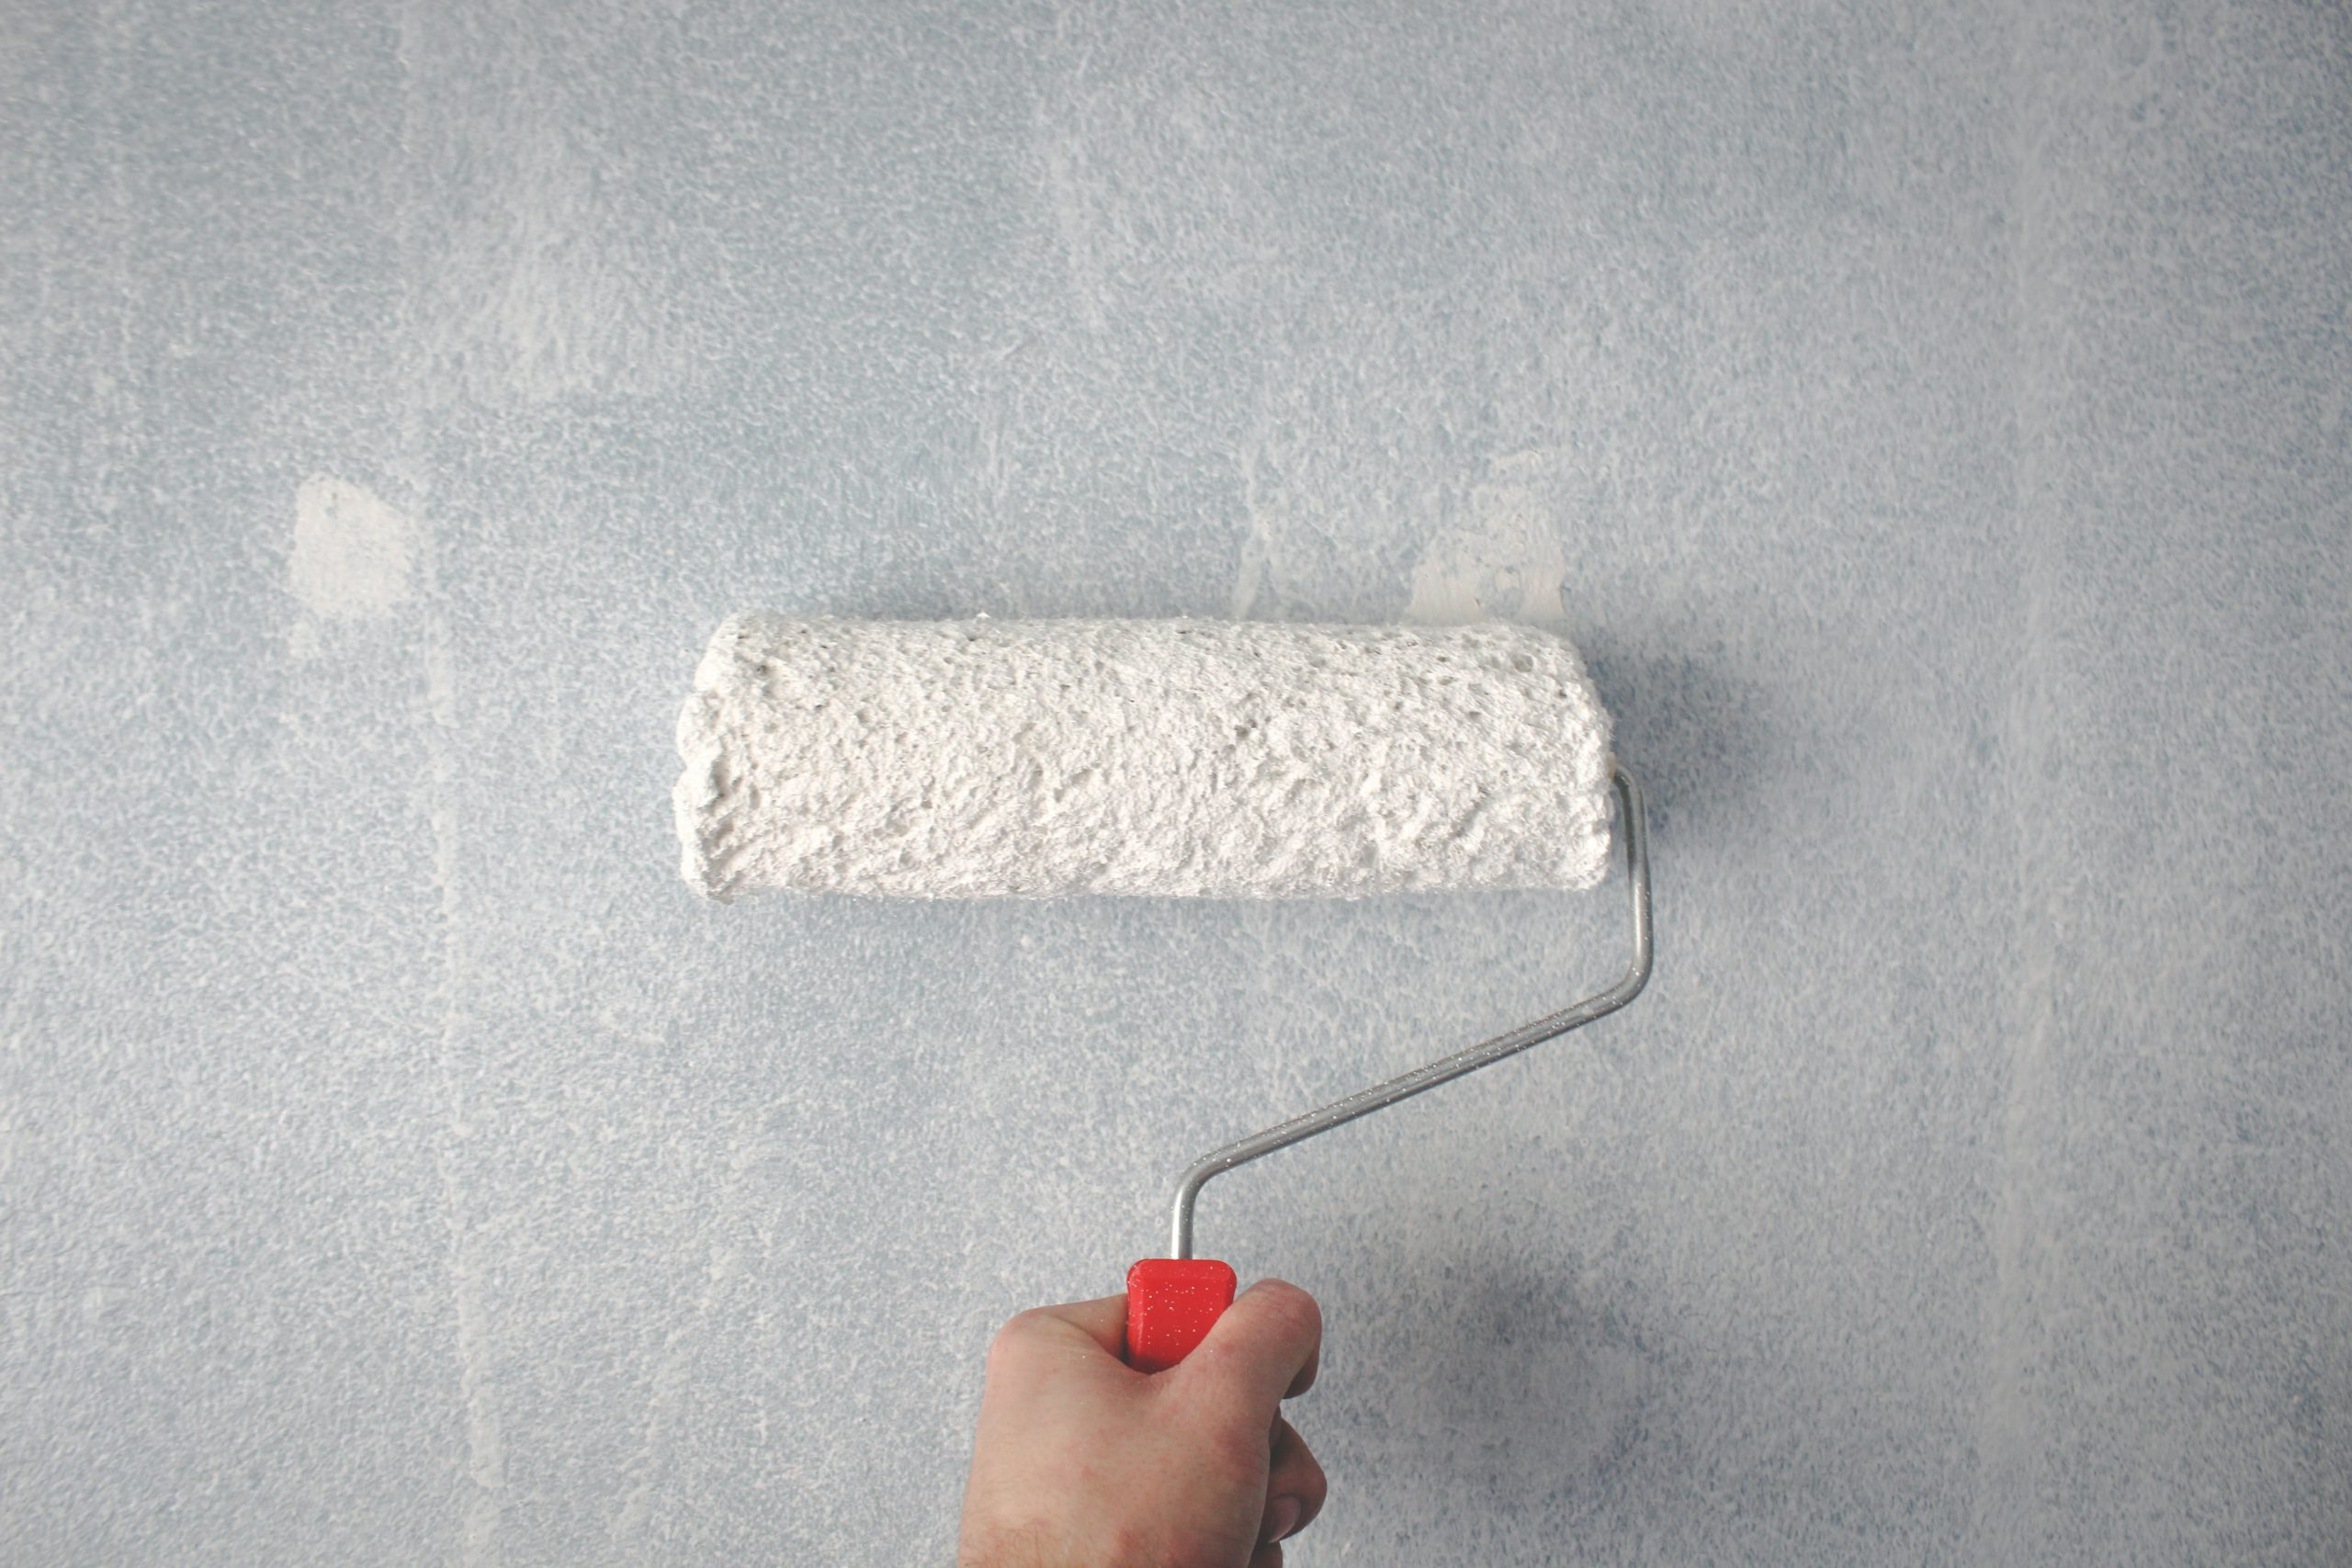 paint roller covering hole in wall